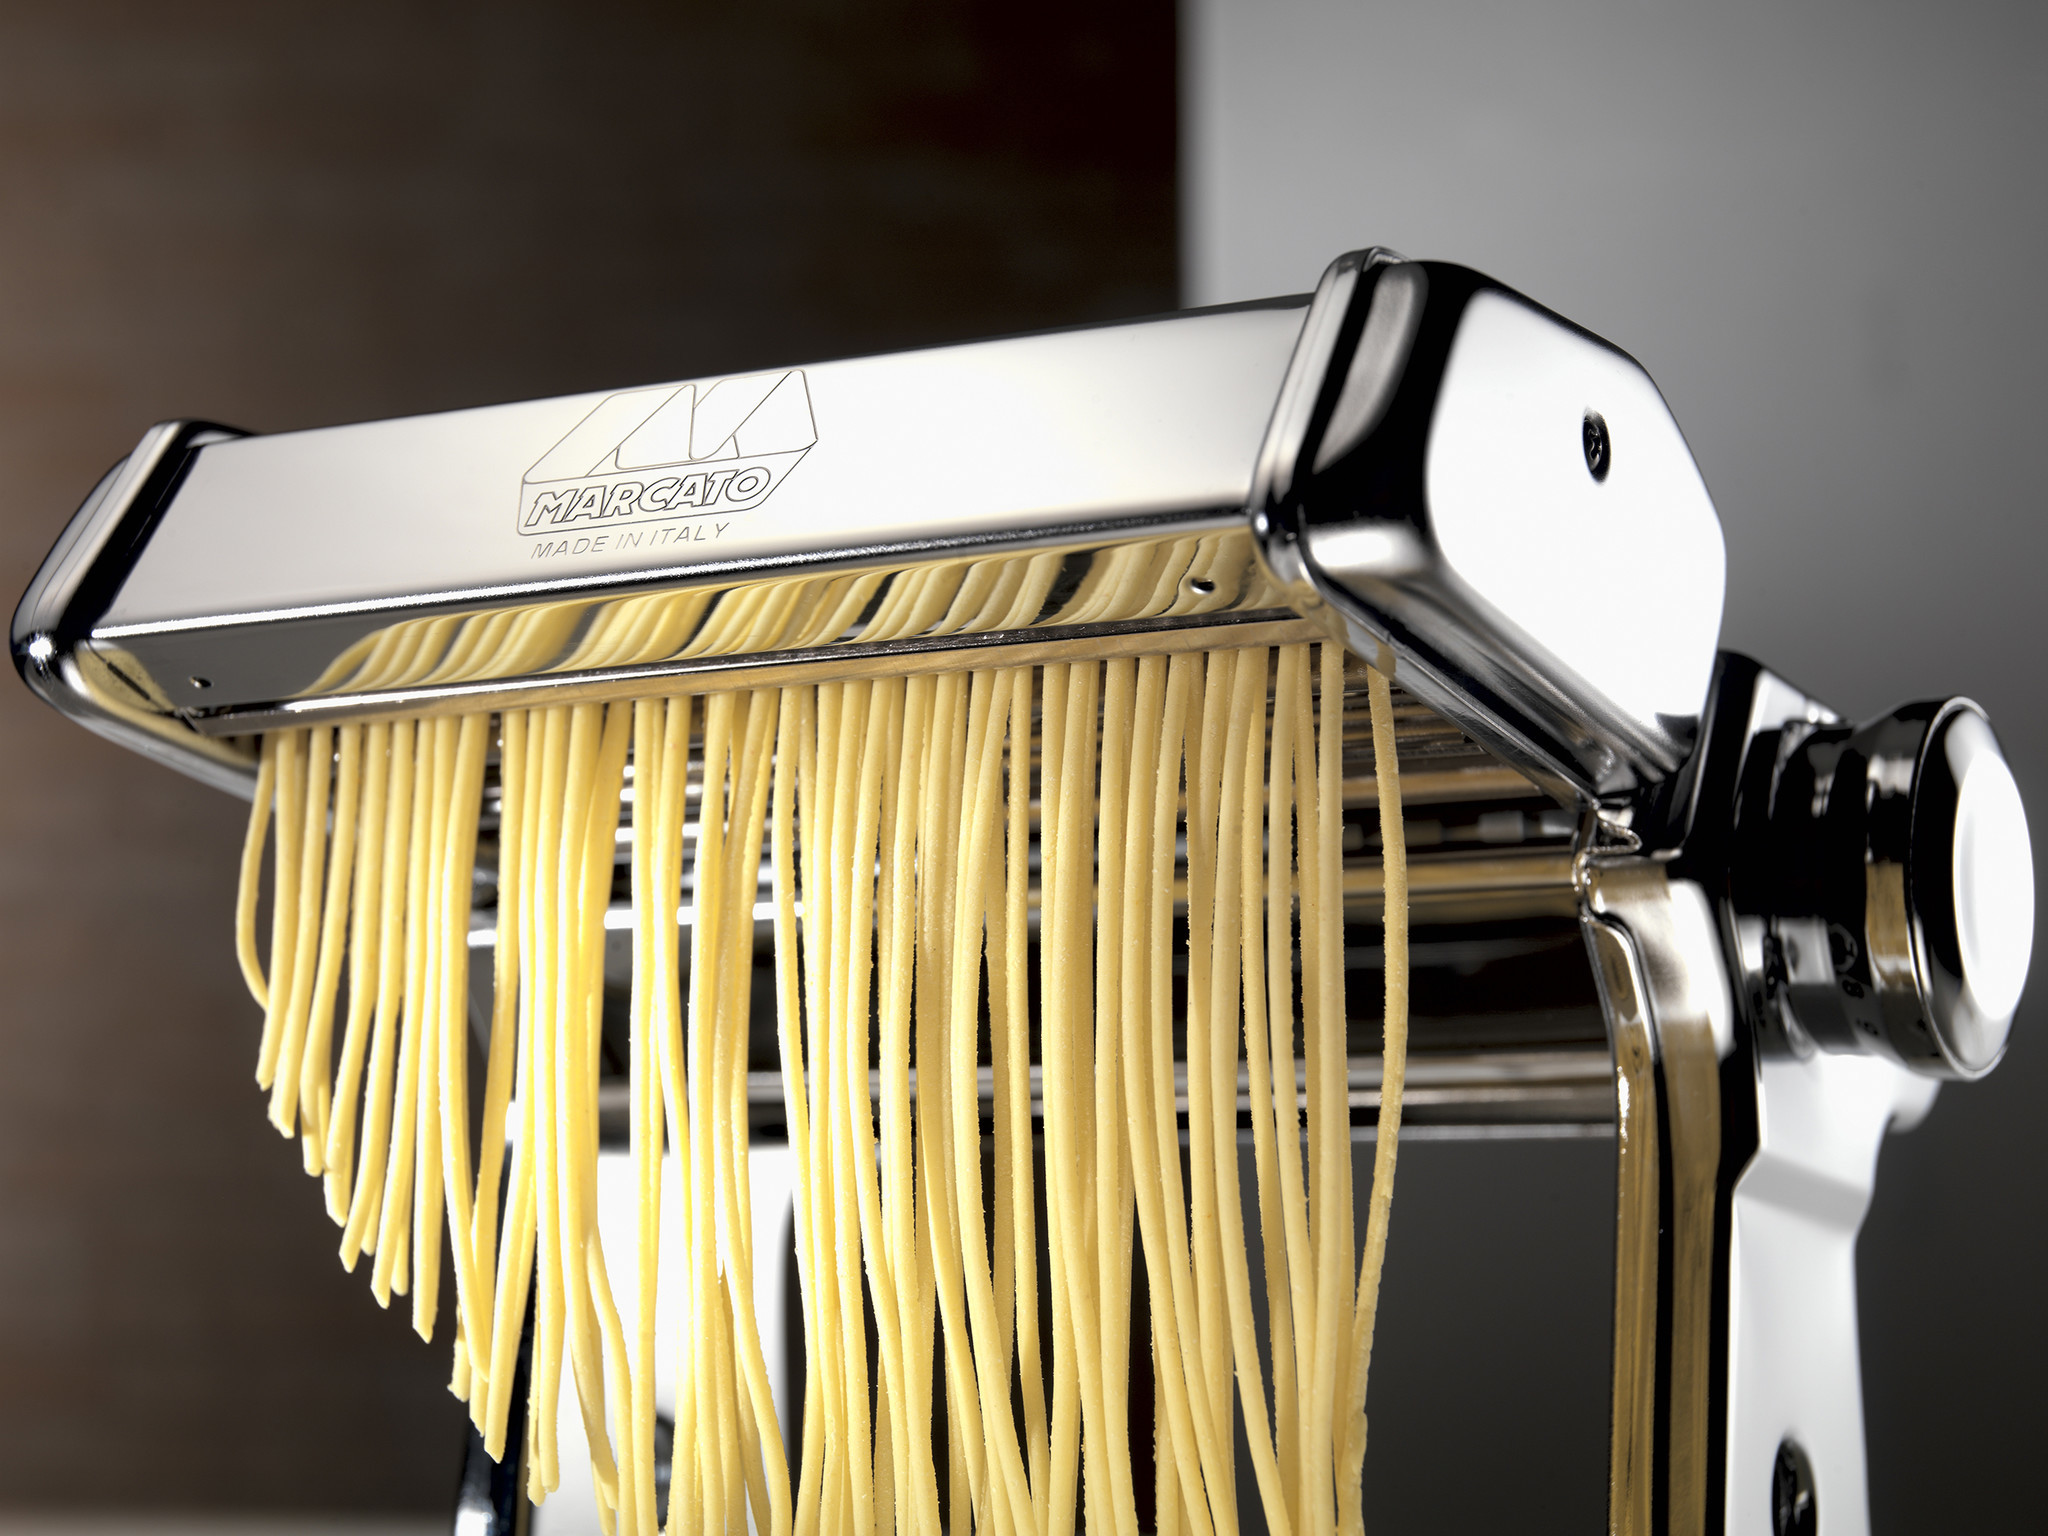 How to buy a pasta-maker - Chicago Tribune